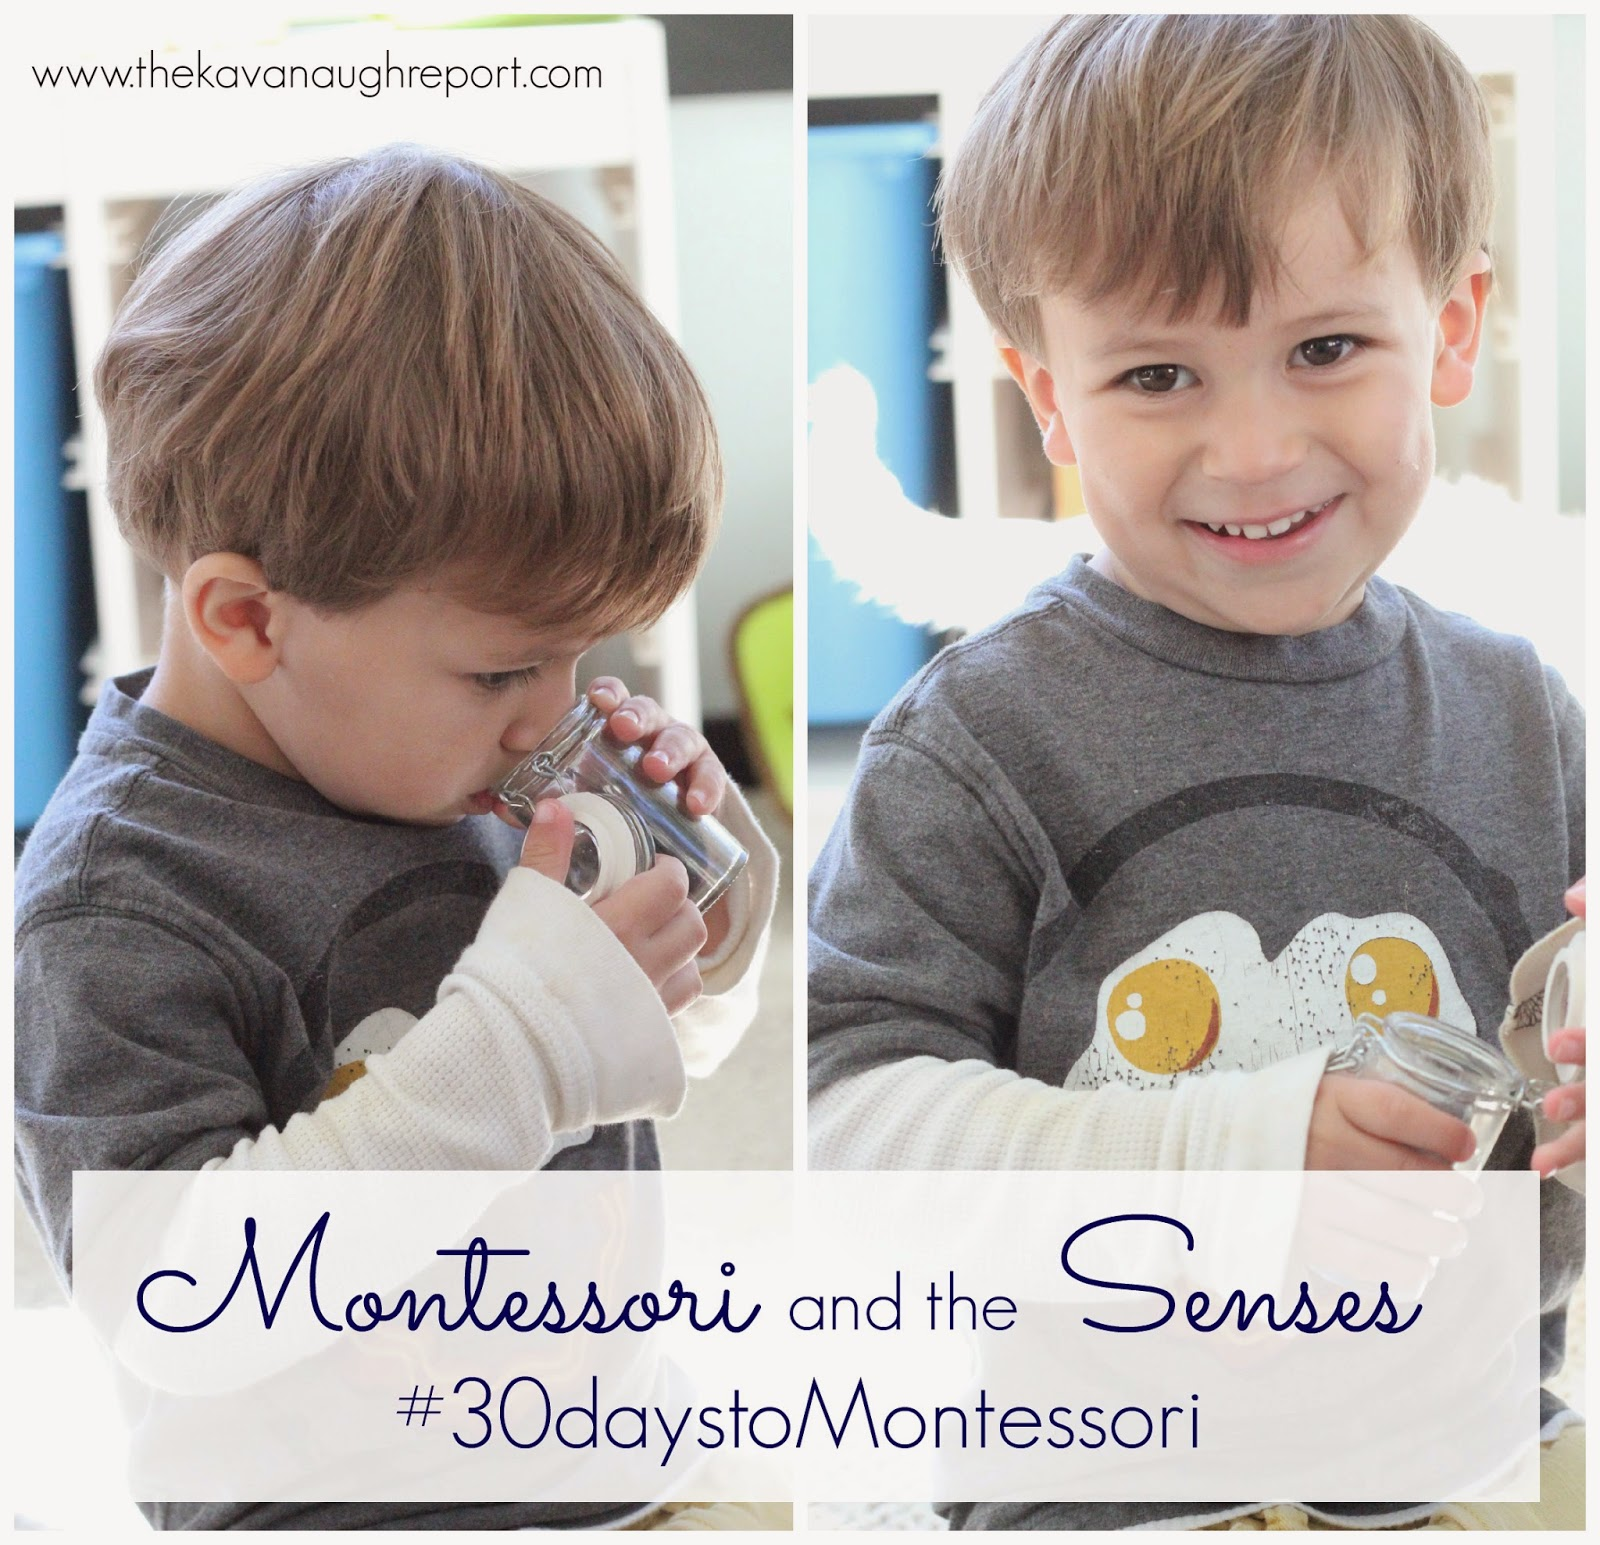 Montessori and the Senses: Simple Ideas to Isolate the Senses as Part of the #30daystoMontessori Challenge.